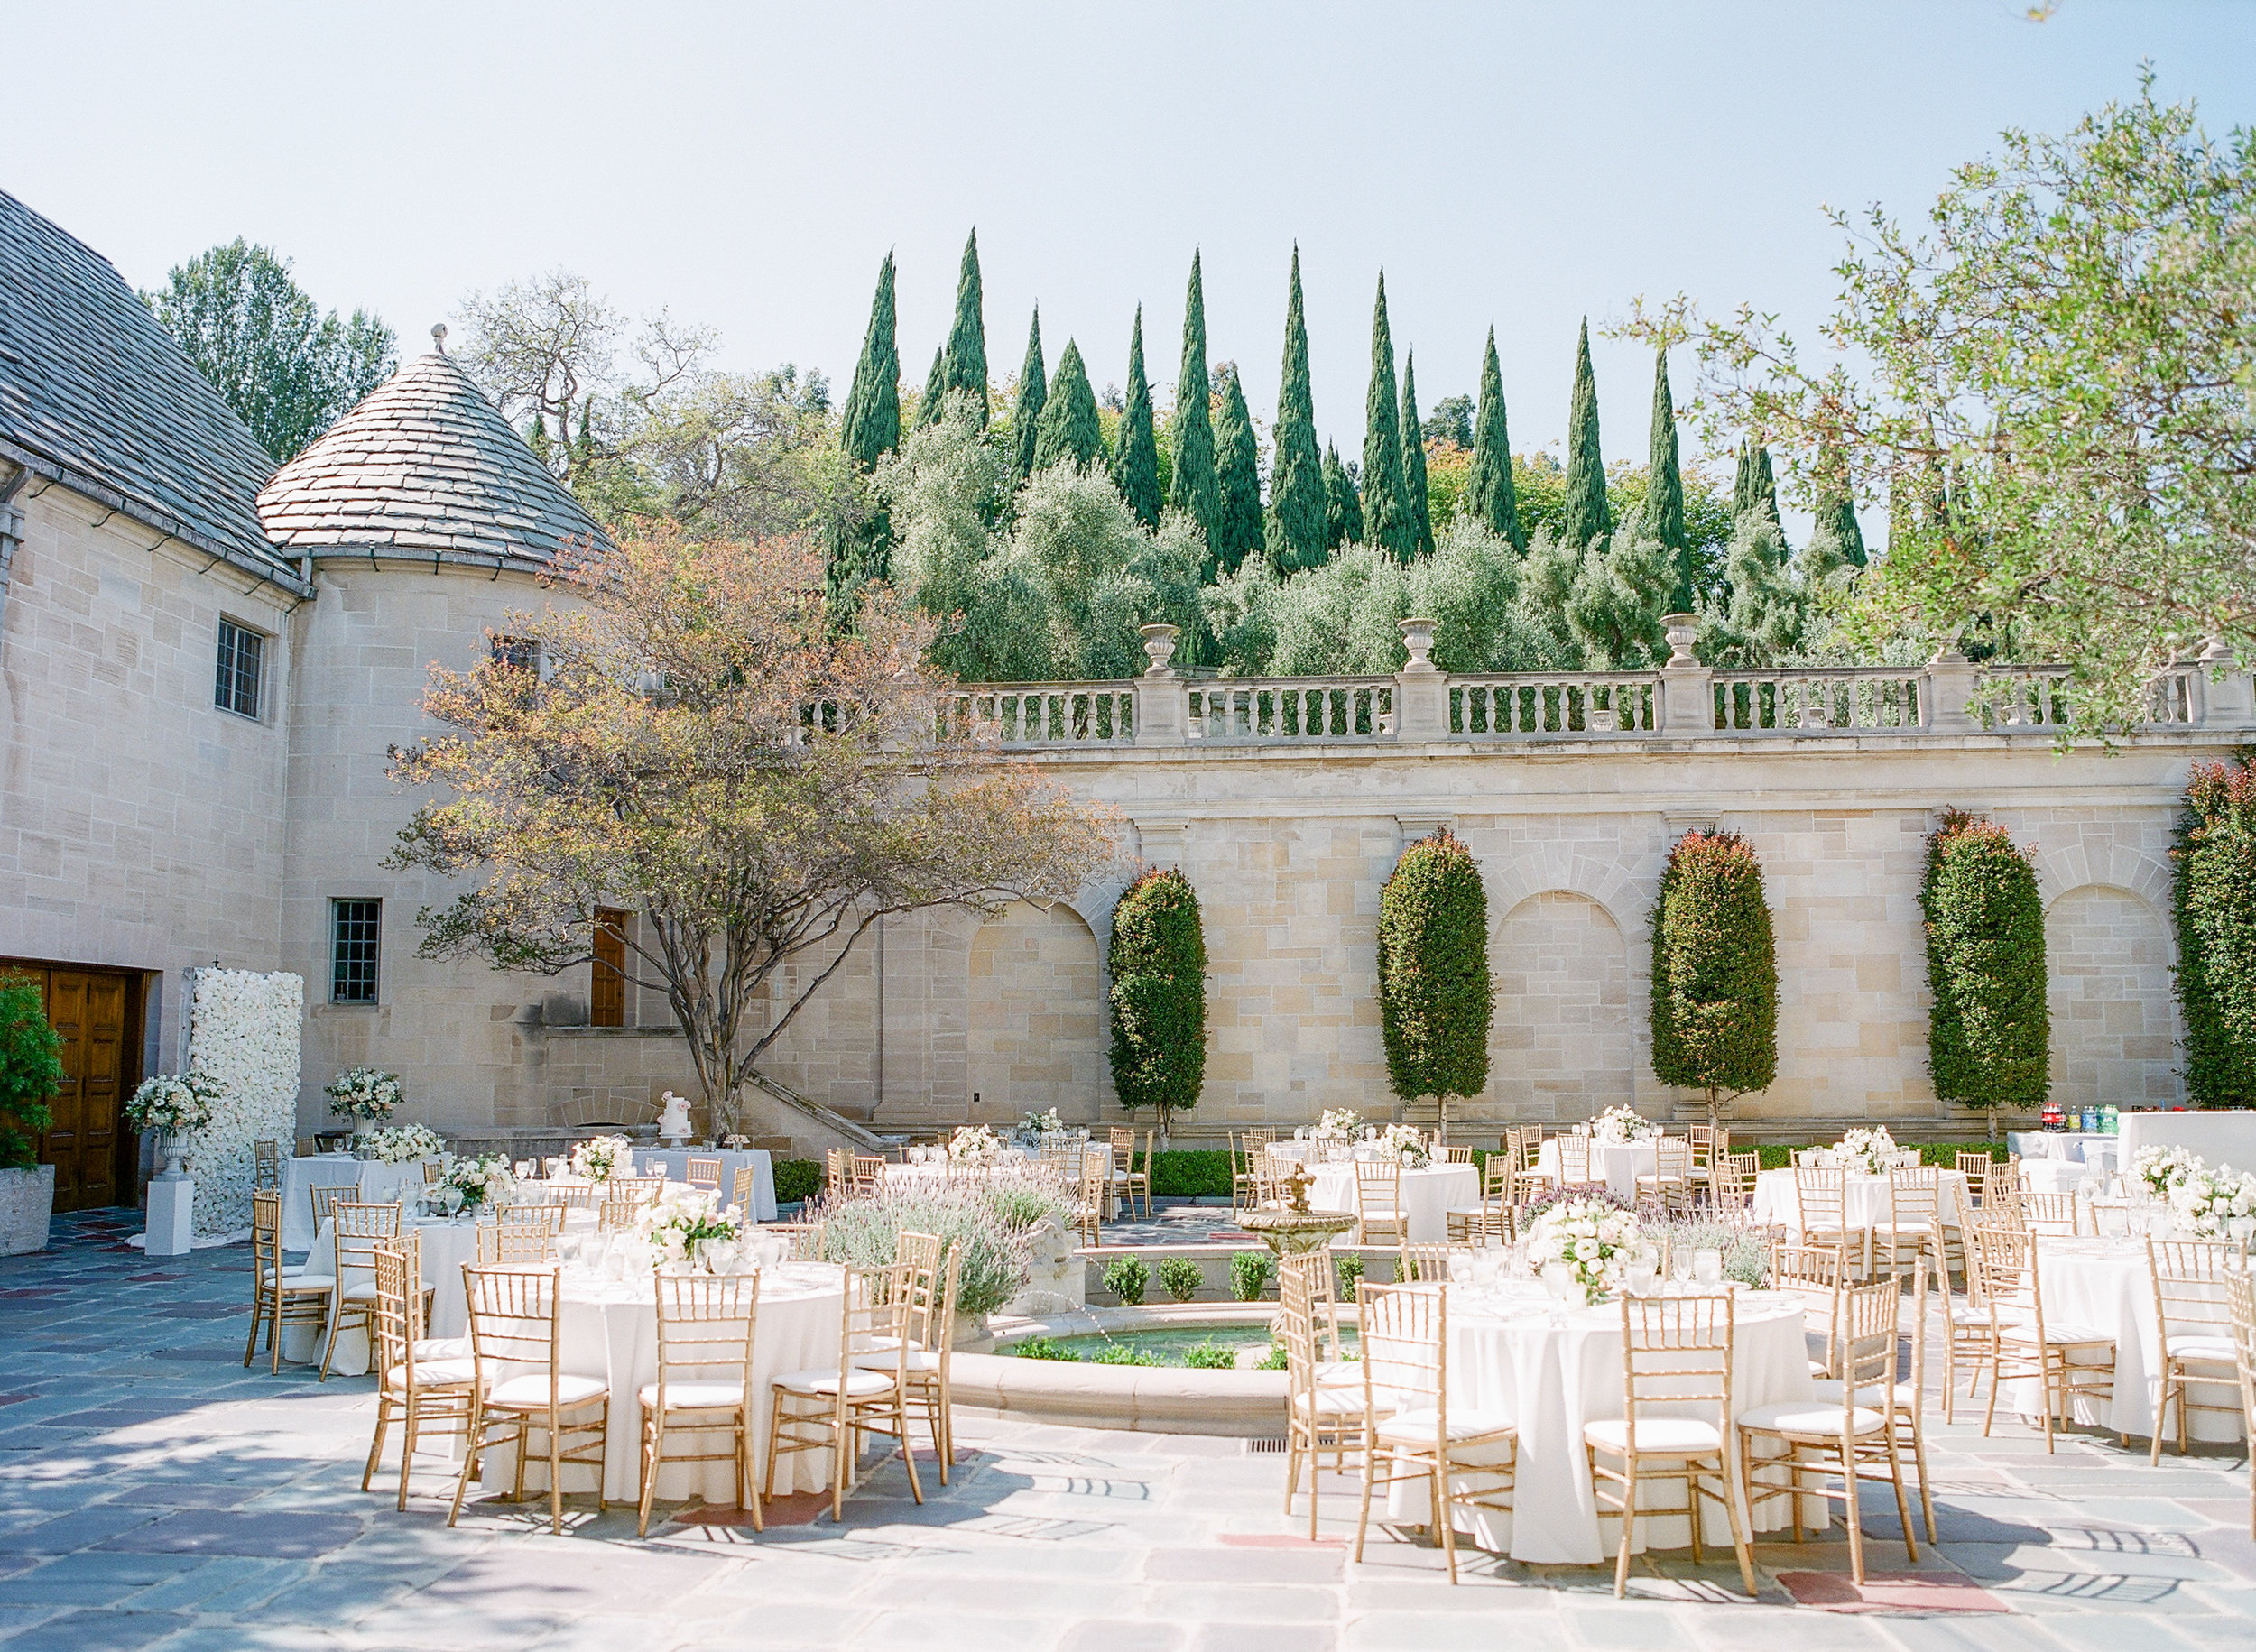 Greystone-Mansion-Wedding-Kristina-Adams-536.jpg